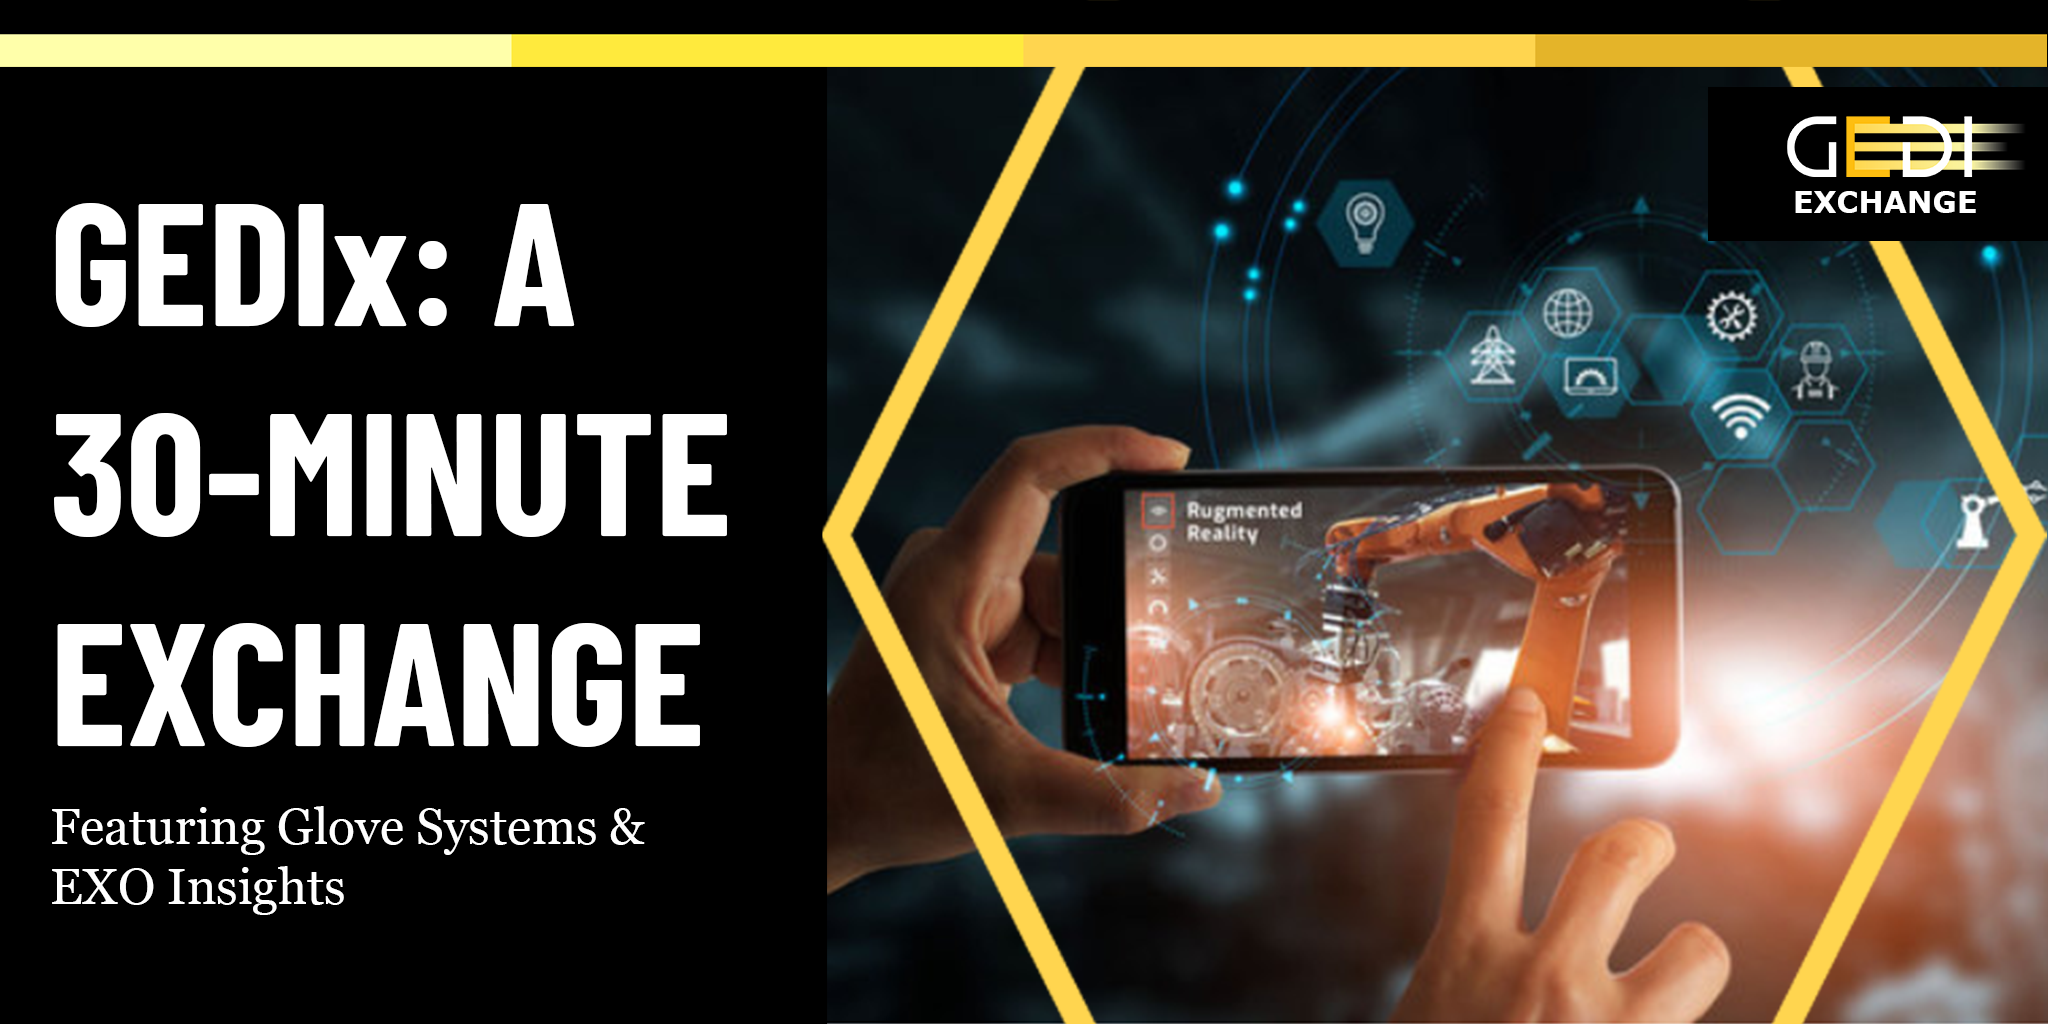 GEDIx: A 30-Minute Exchange Featuring Glove Systems and EXO Insights